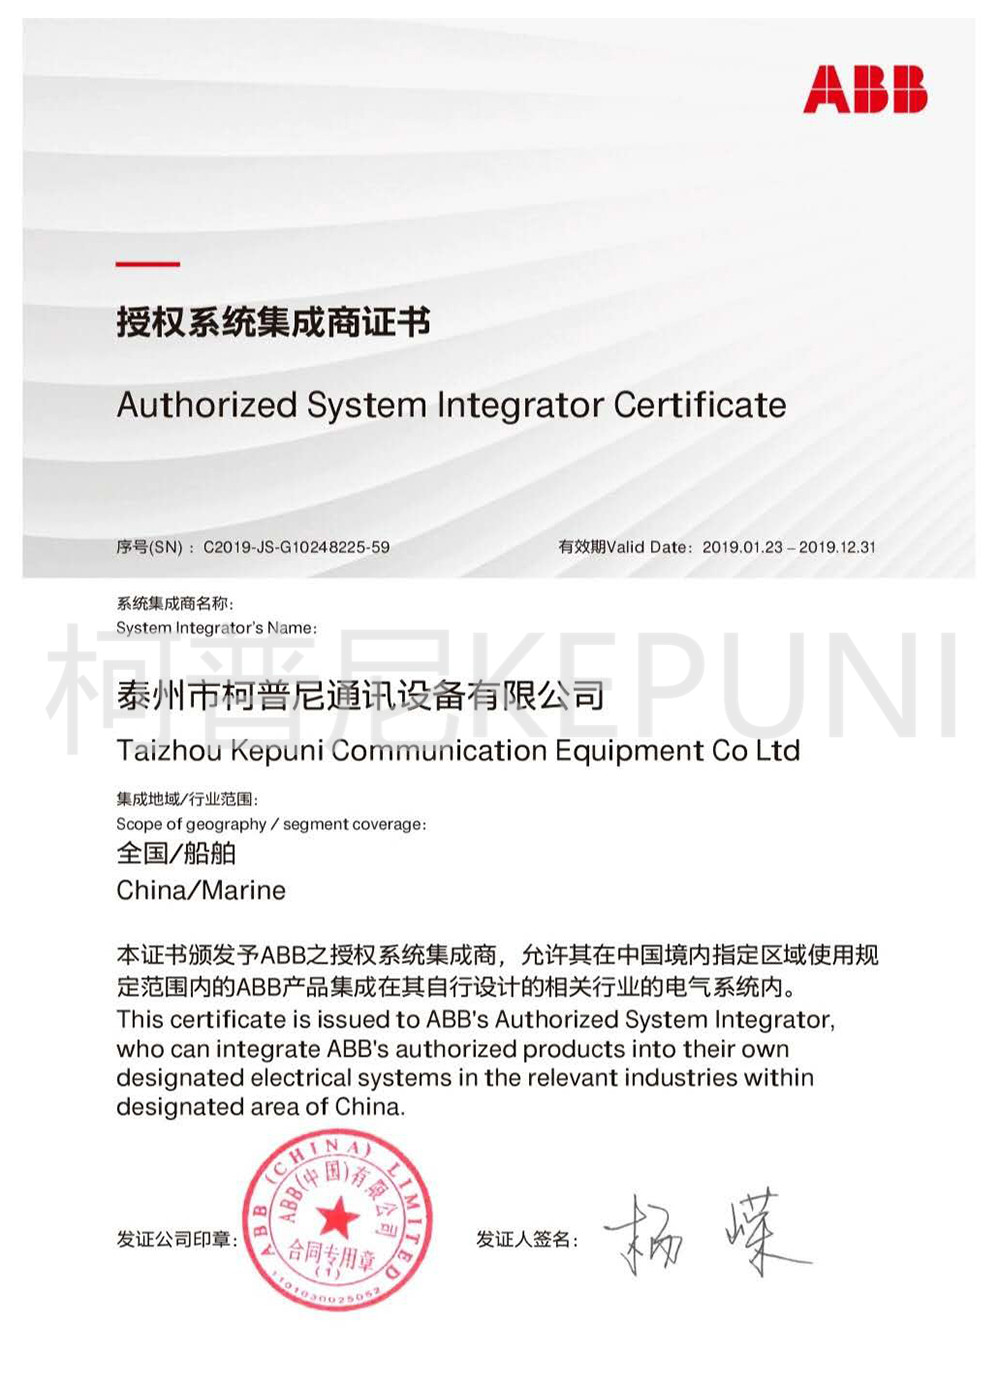 ABB authorized system integrator certificate